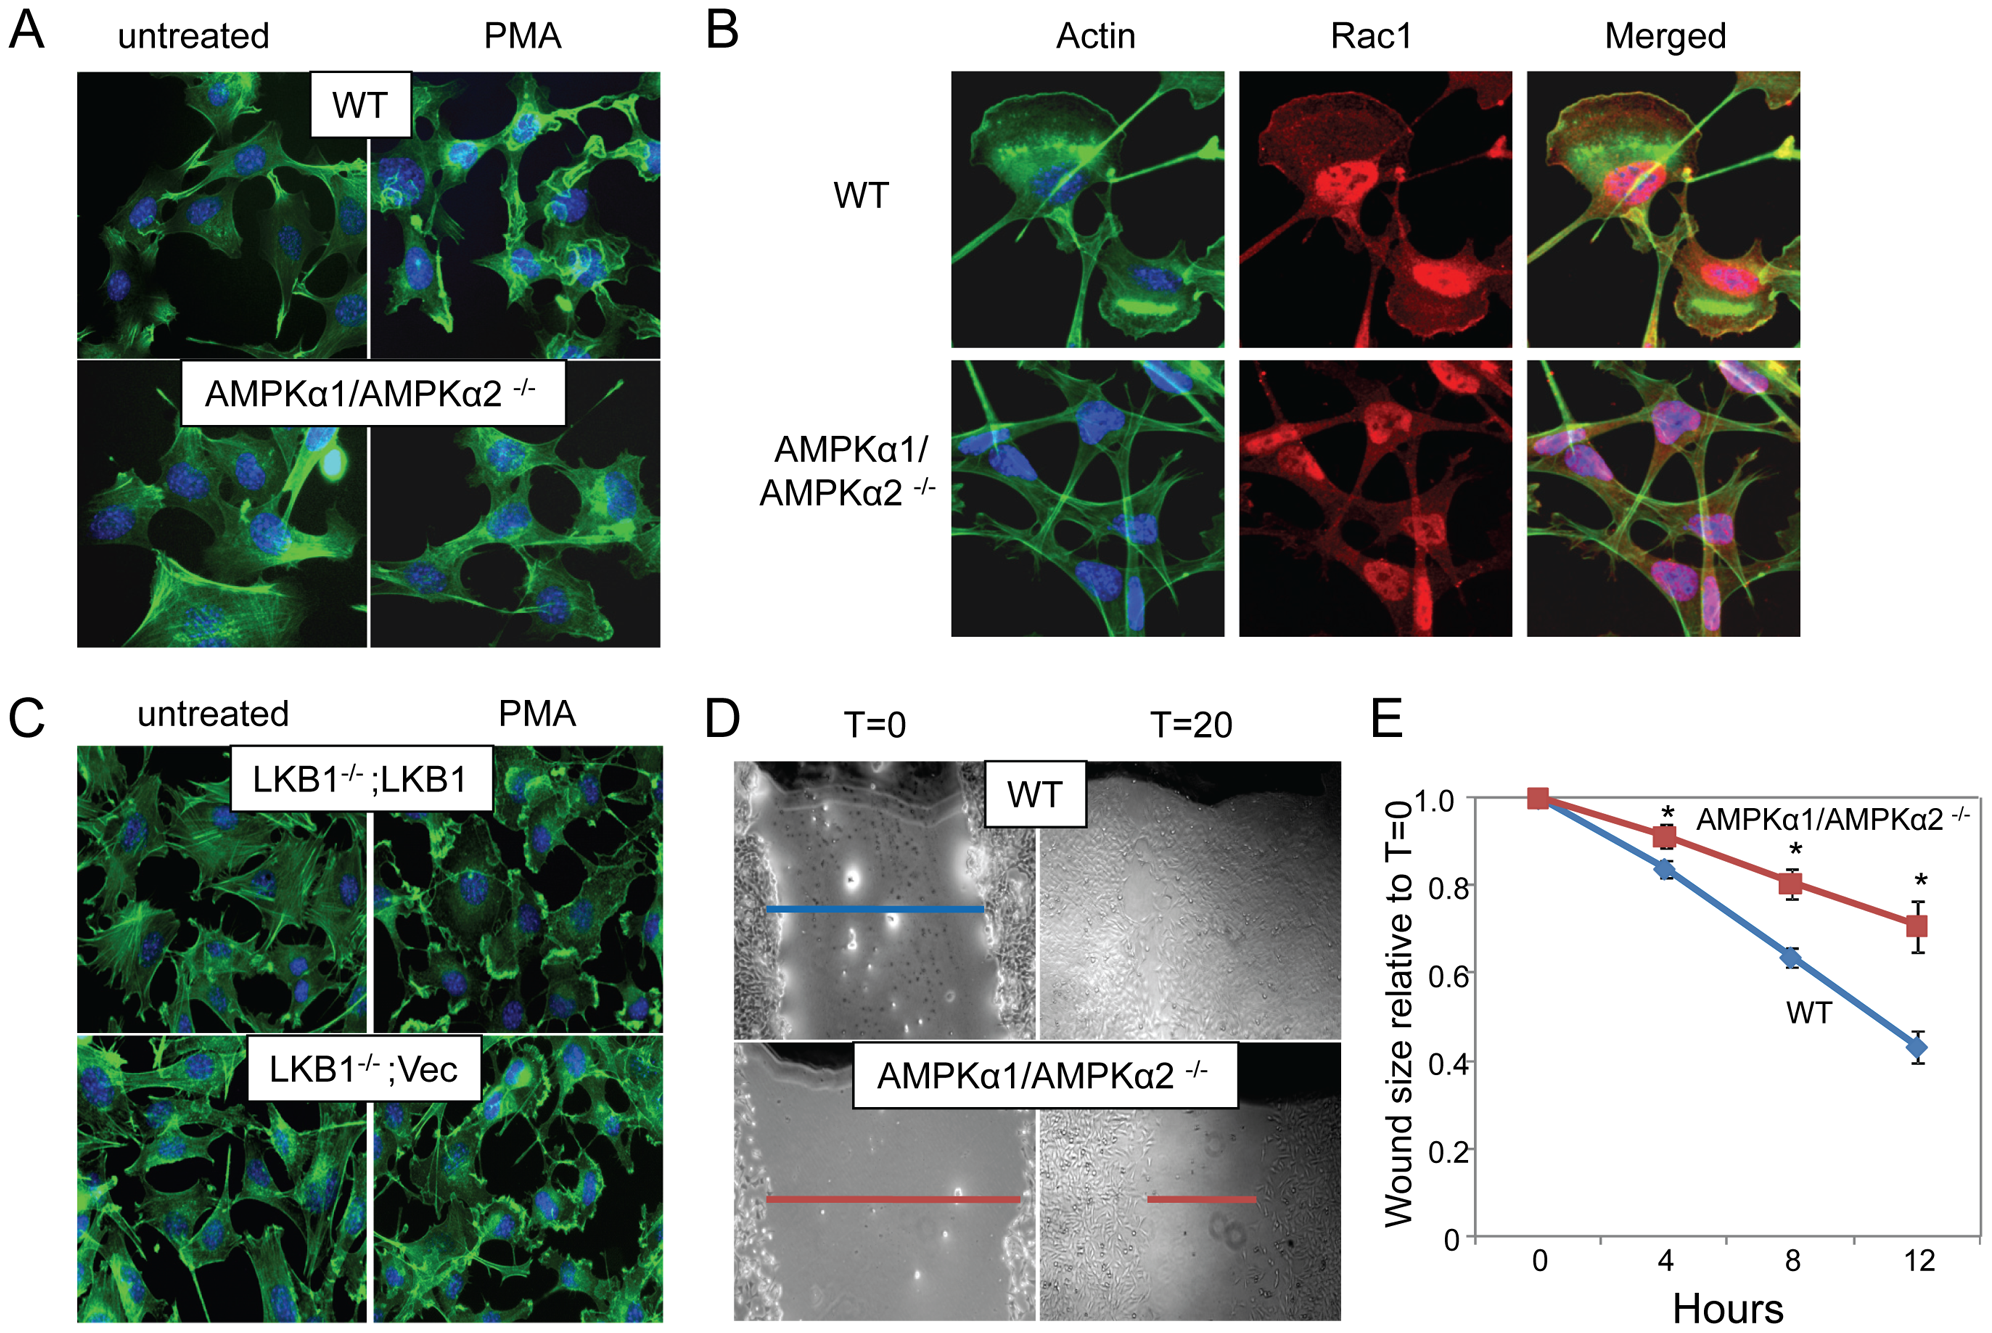 AMPK is required for actin-dependent membrane ruffling and wound healing independent of LKB1.